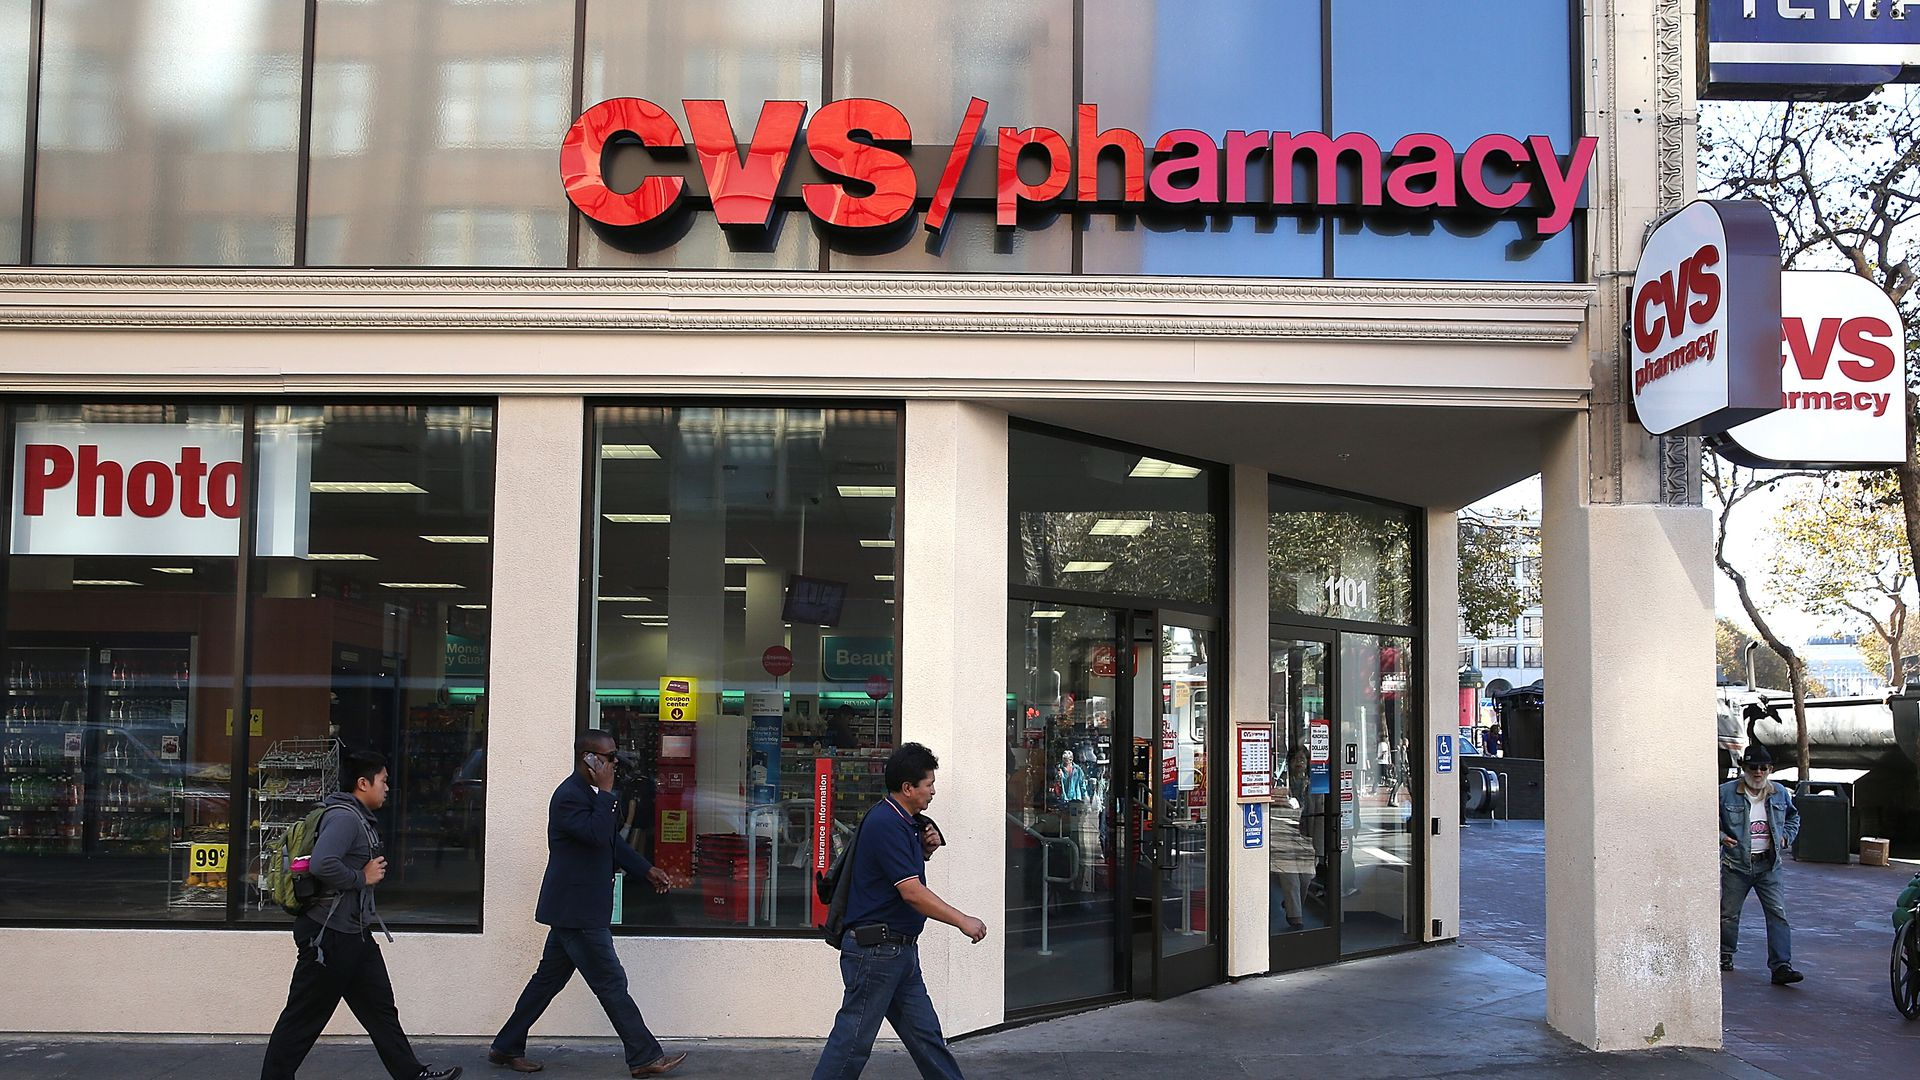 People walk outside a CVS pharmacy store.